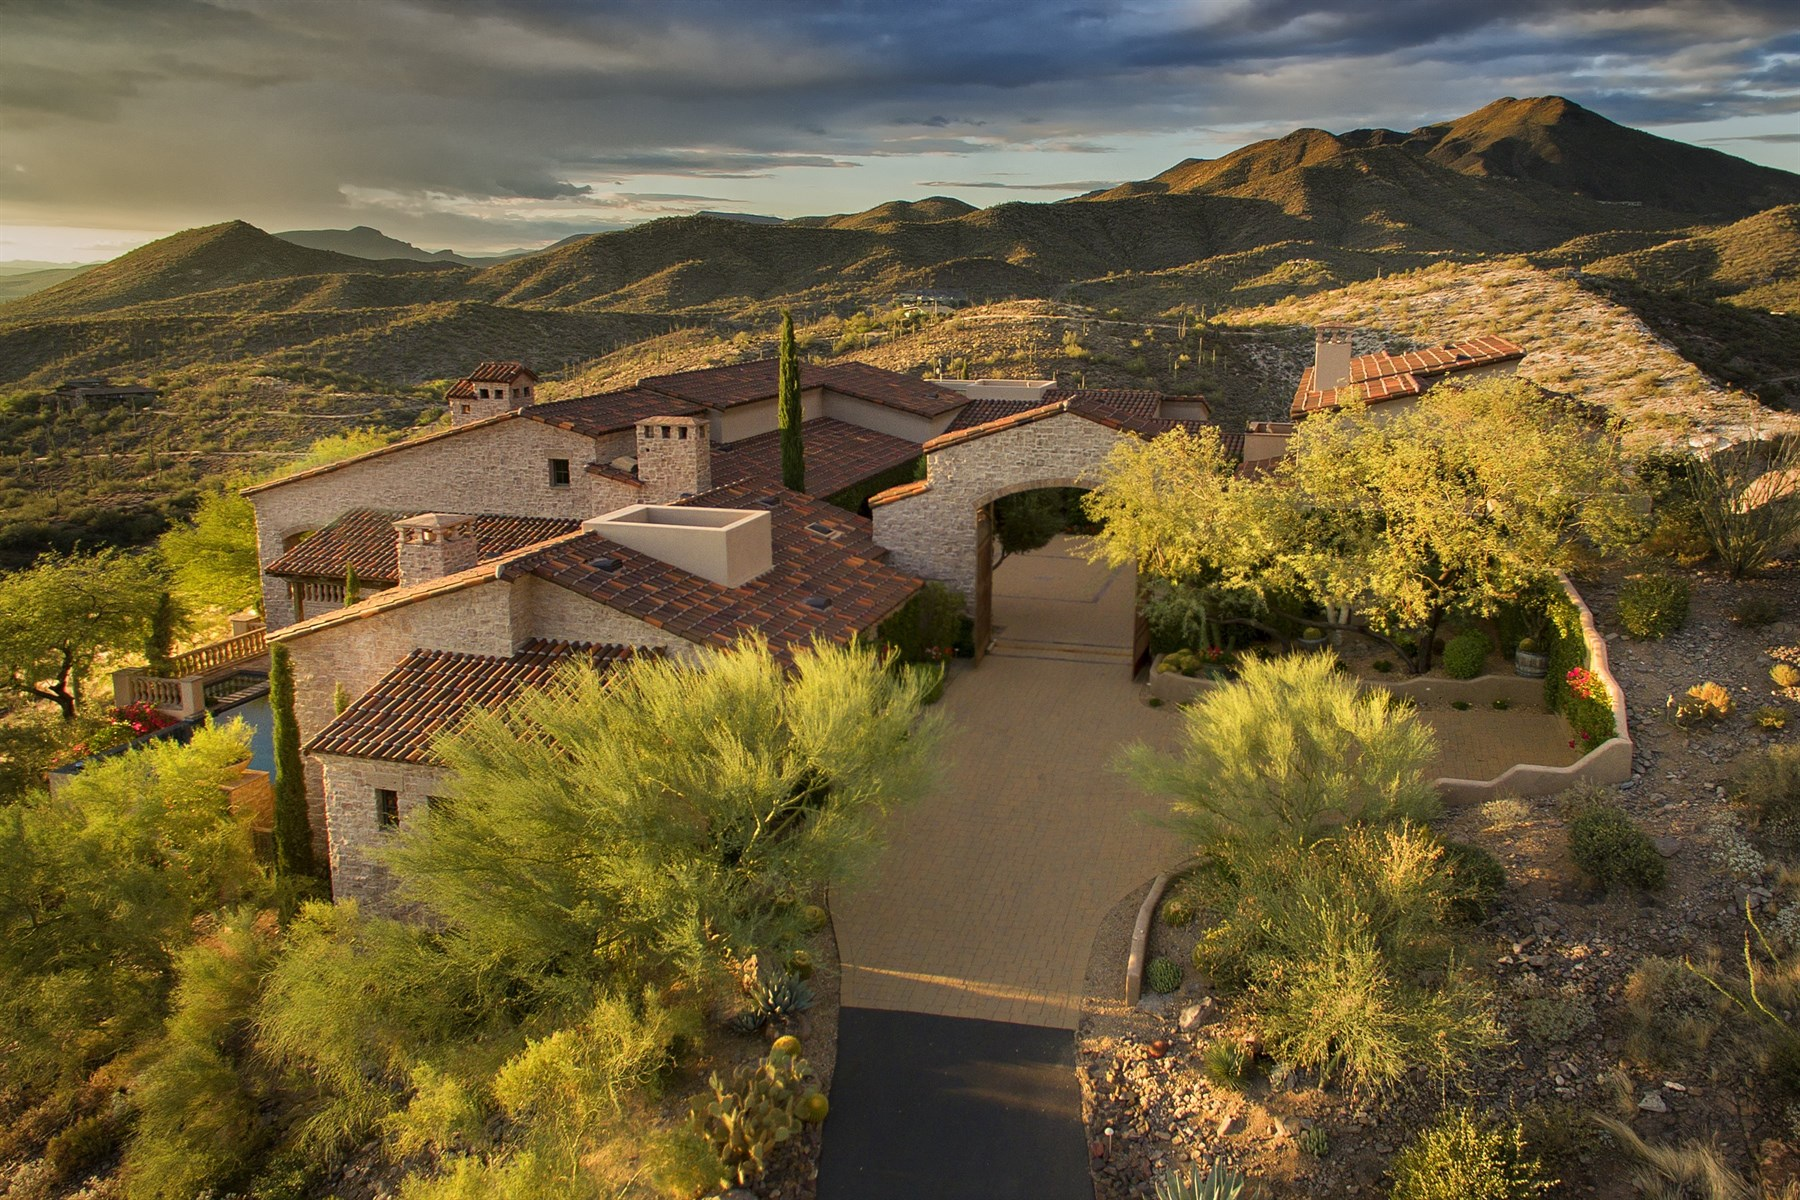 Maison unifamiliale pour l Vente à Private gated 6+ acre estate perched on a hillside in Carefree Ranch 39429 N Tom Morris Rd Scottsdale, Arizona, 85262 États-Unis